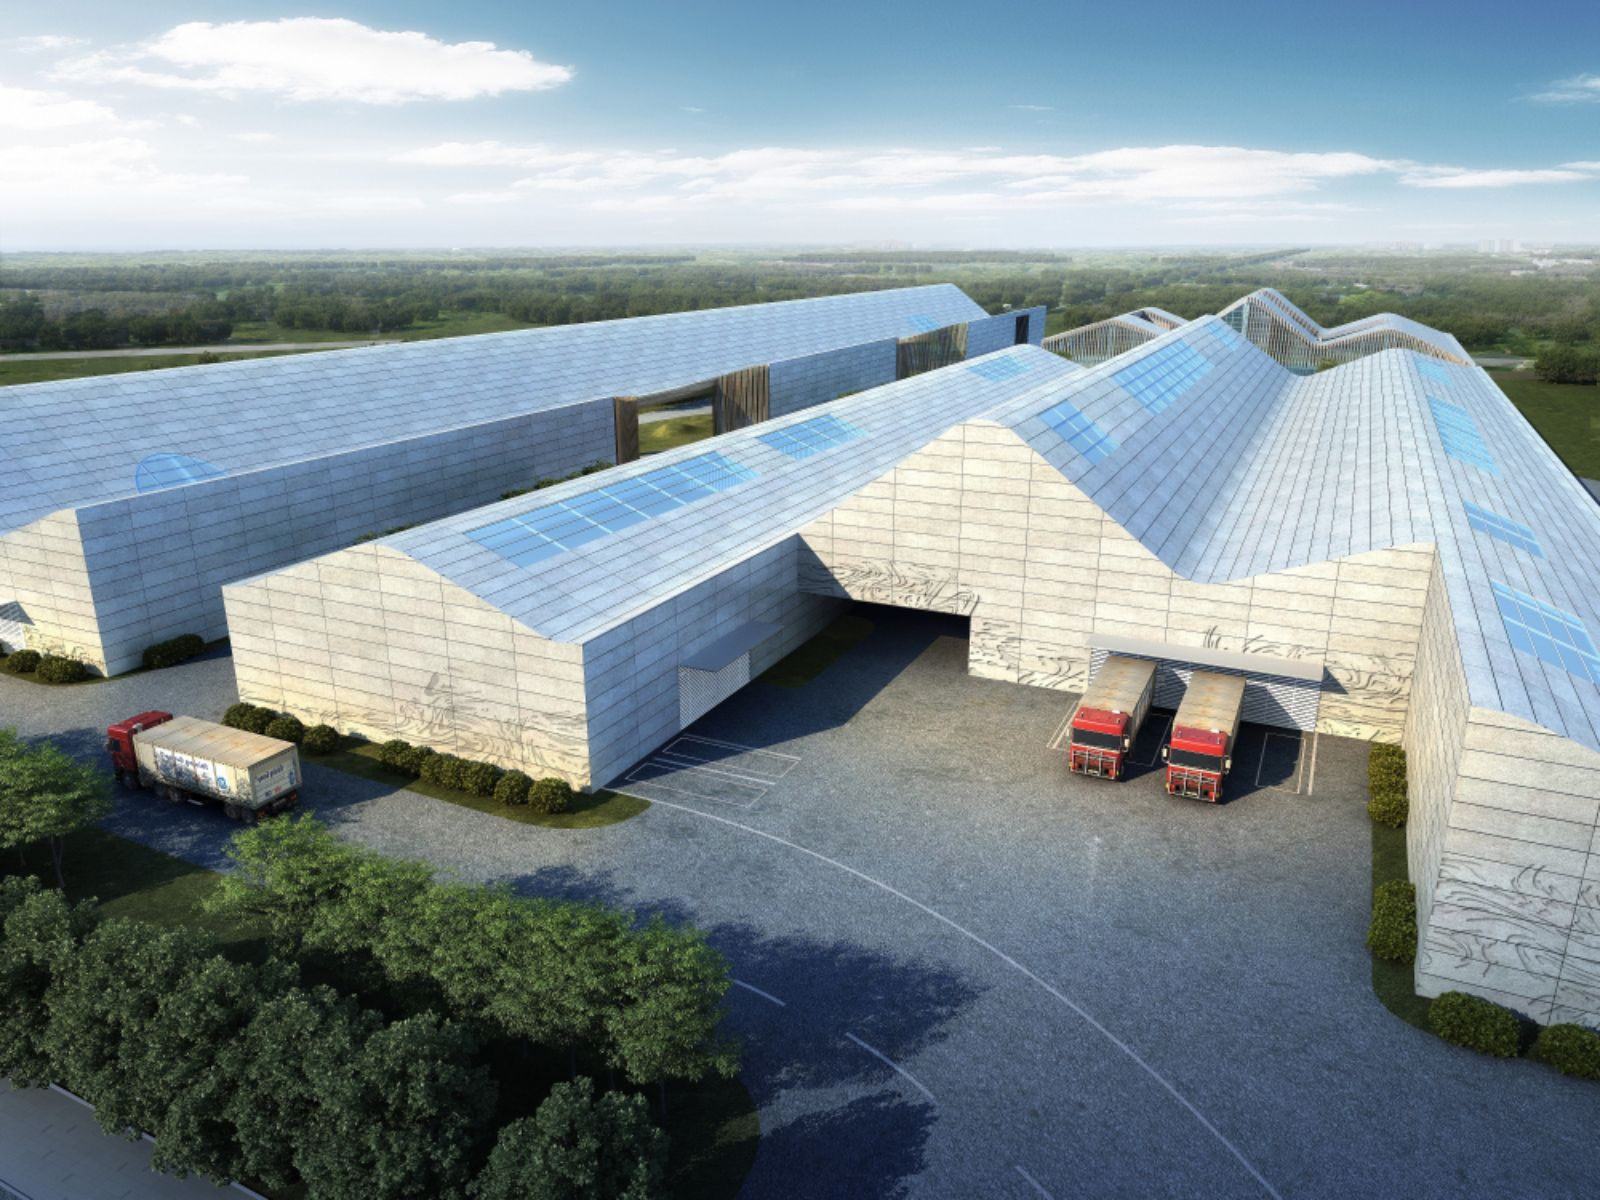 Sichuan international glass art factoryand innovation for Sichuan cendes architectural design company limited